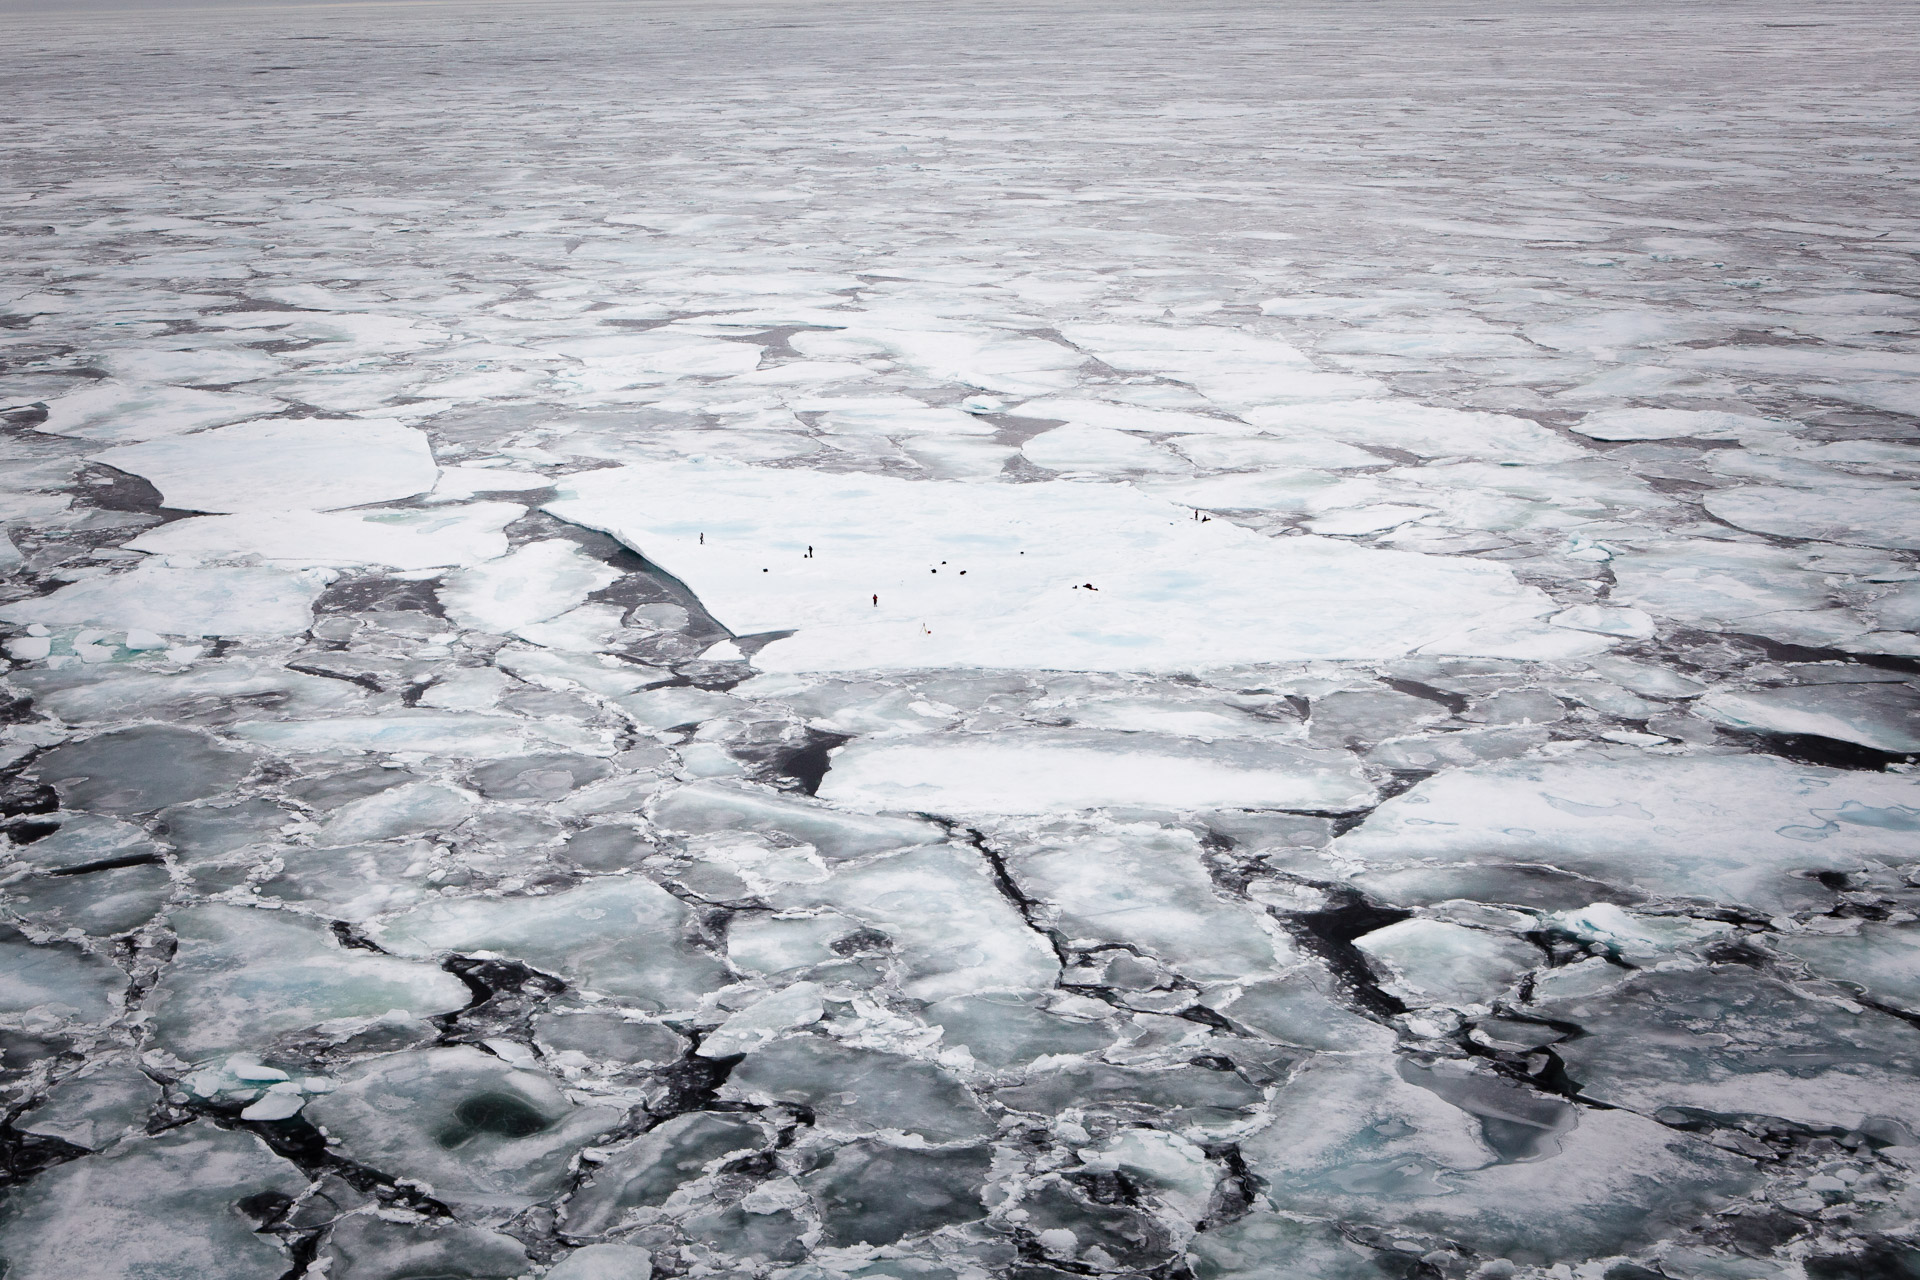 scientists working on a sea ice floe in the arctic ocean photographed from the air